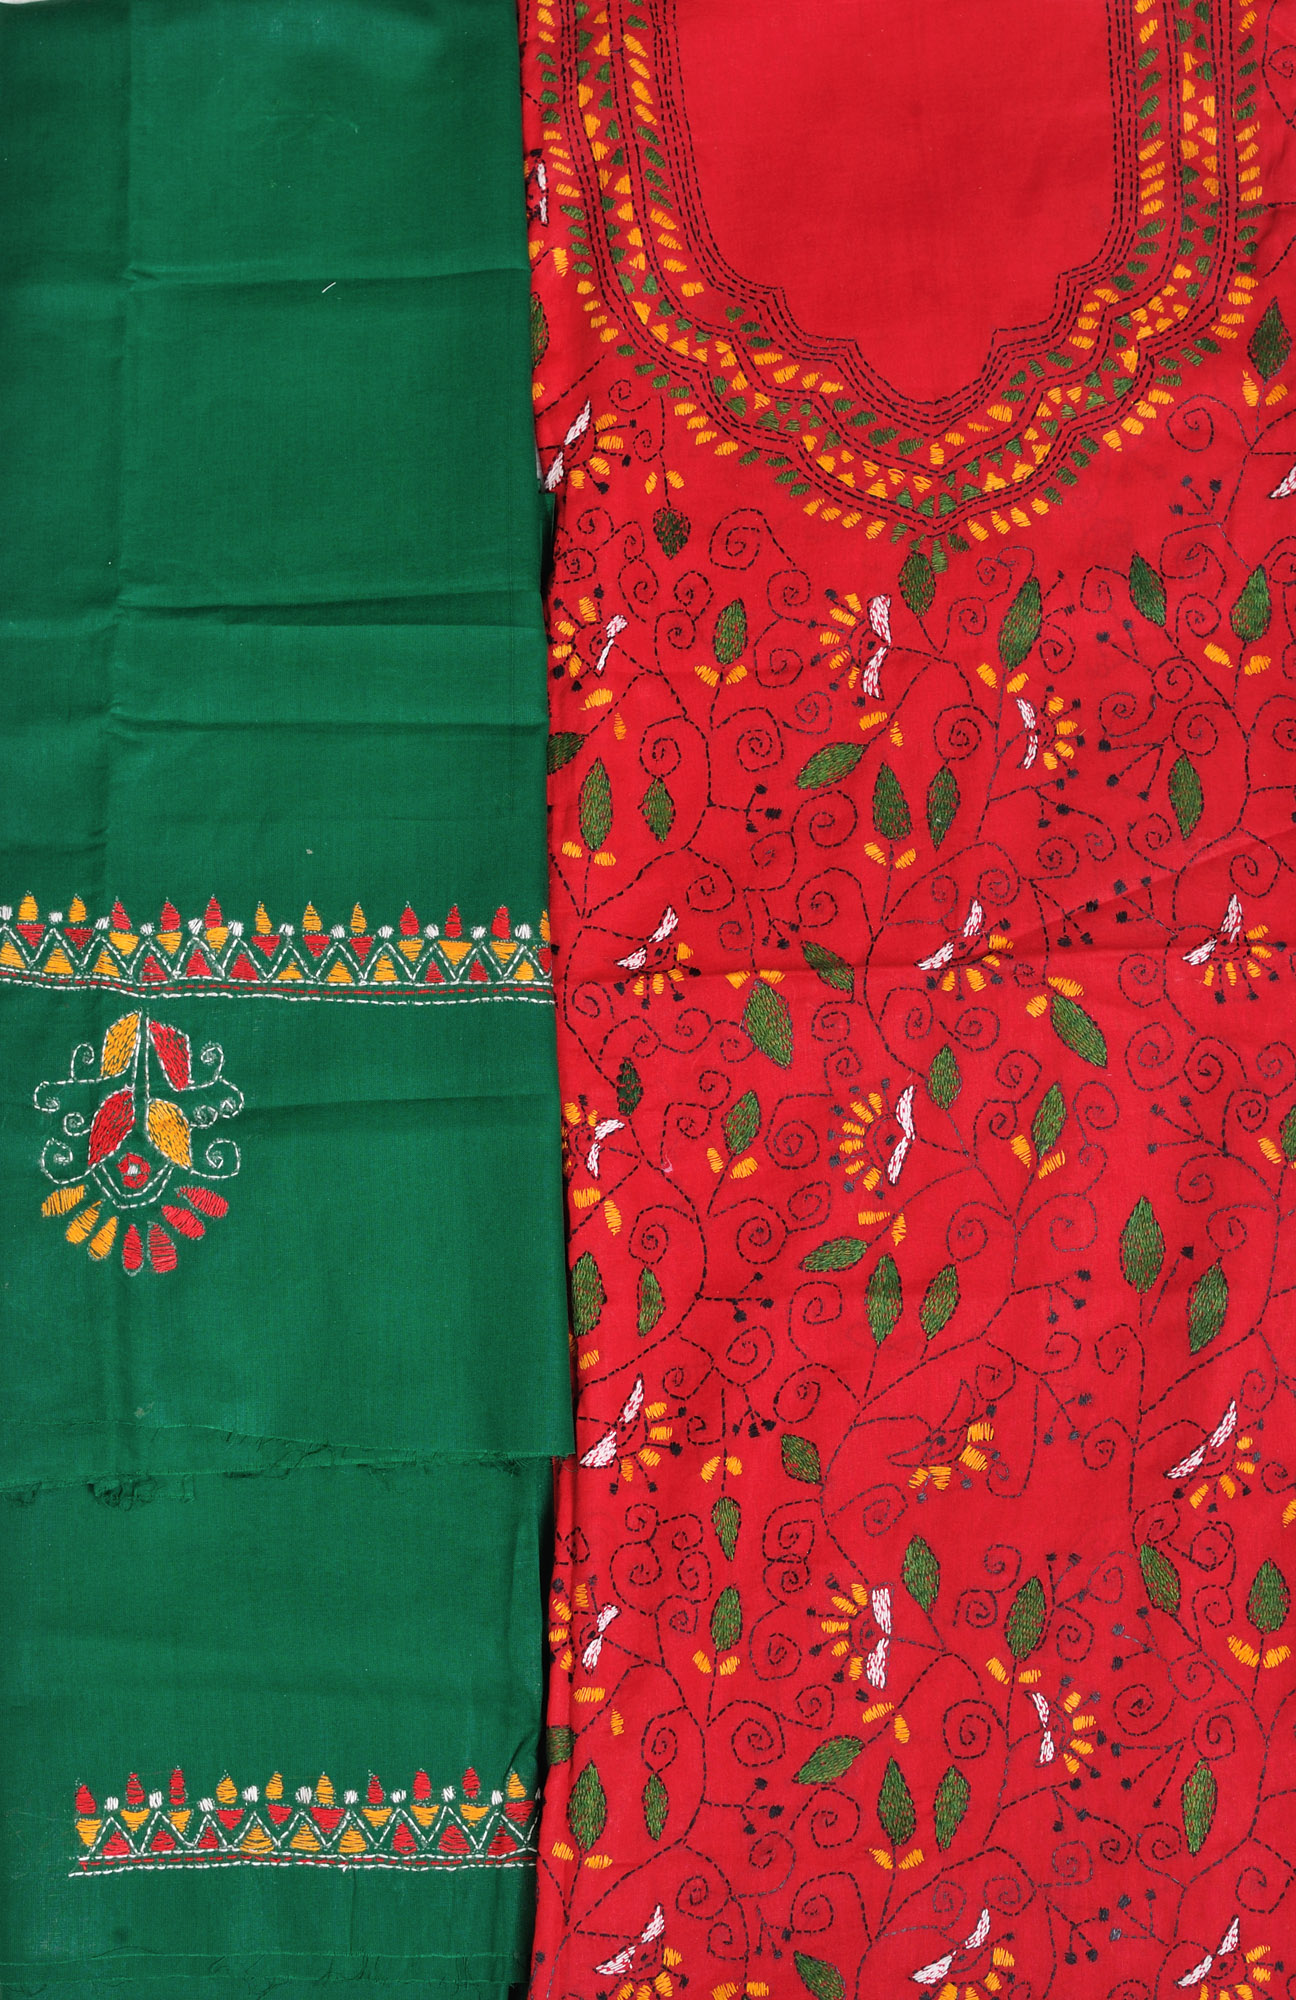 Red and green salwar kameez fabric from kolkata with